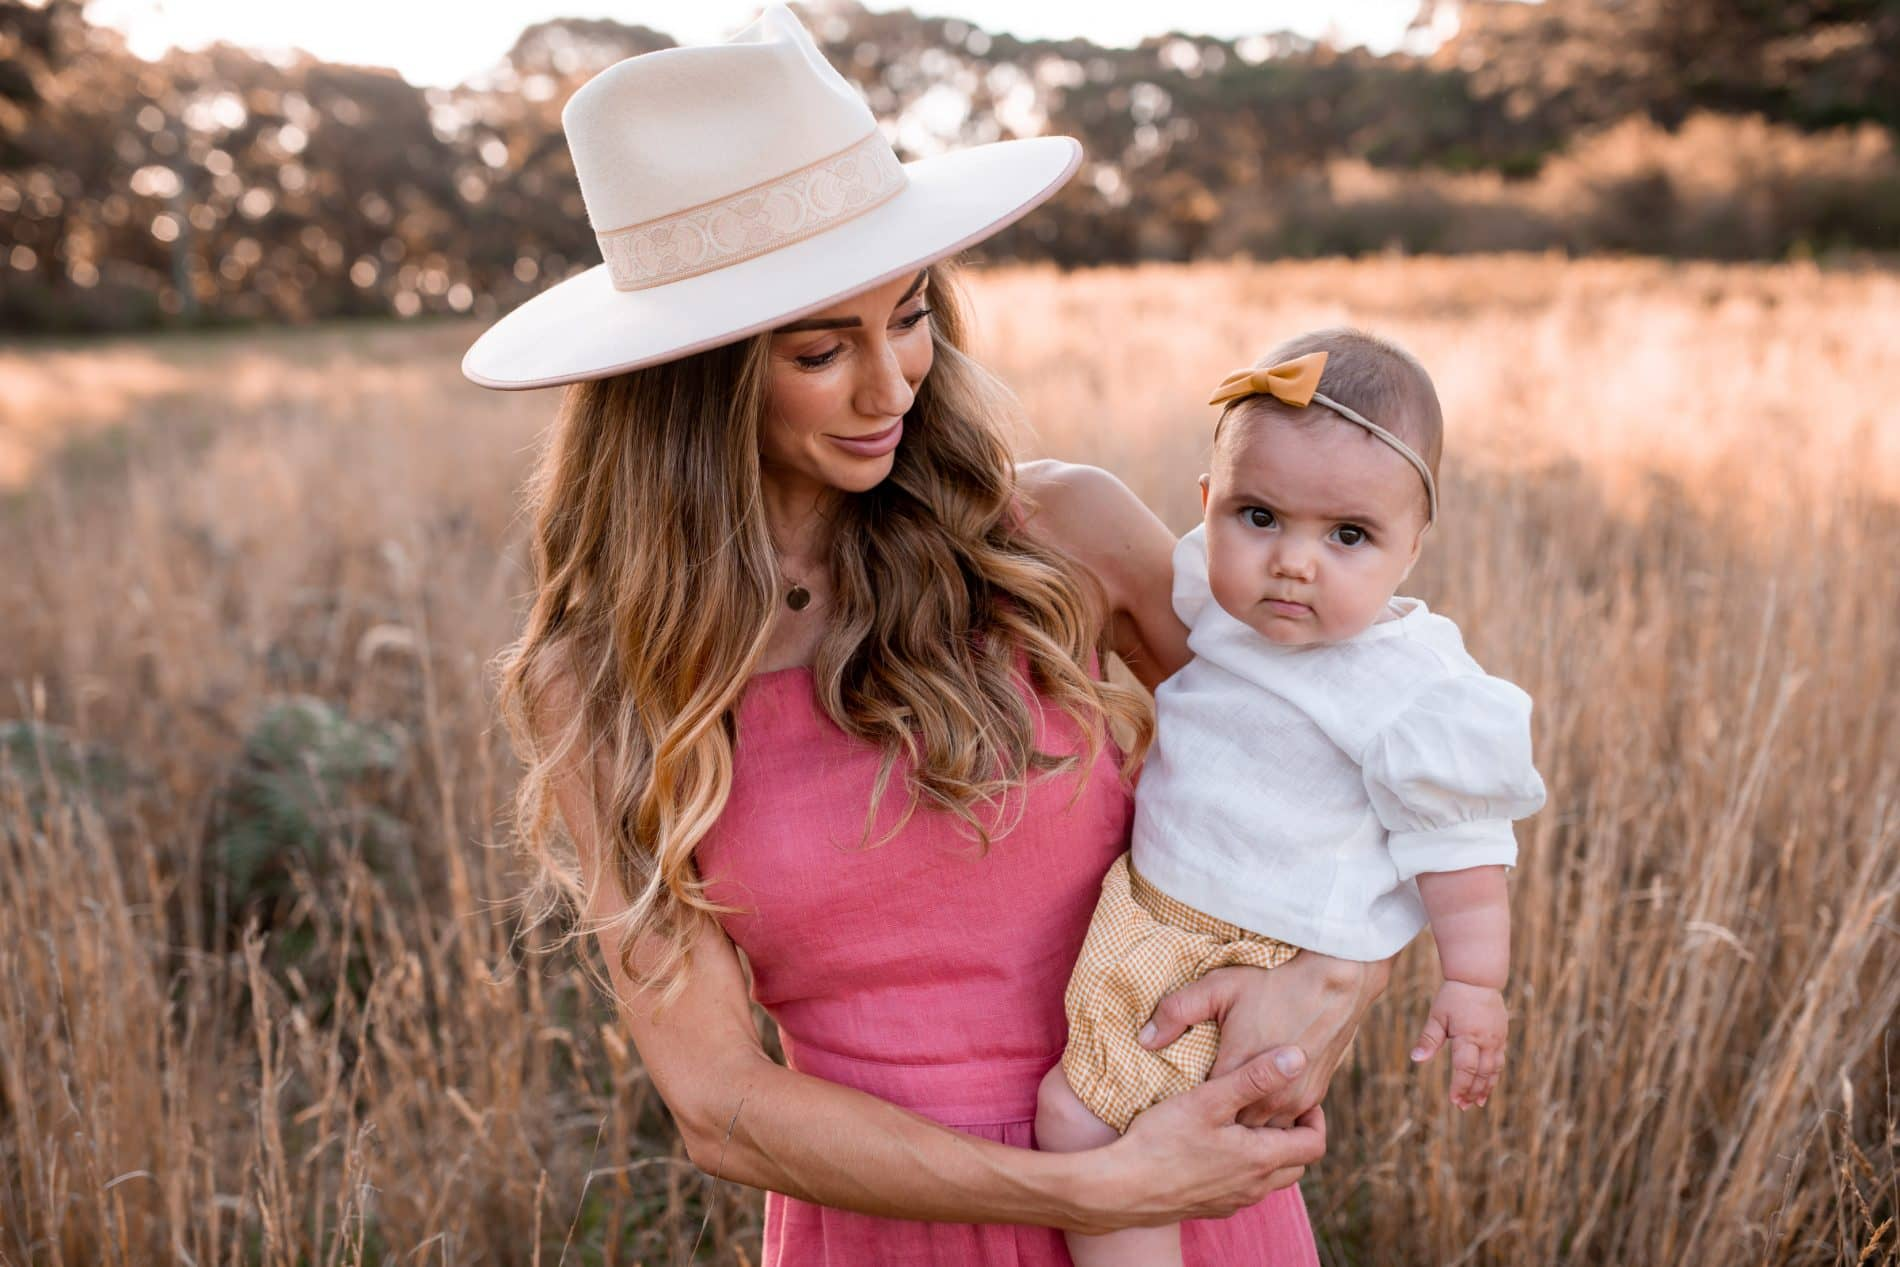 Krystal Hipwell talks on social media and motherhood